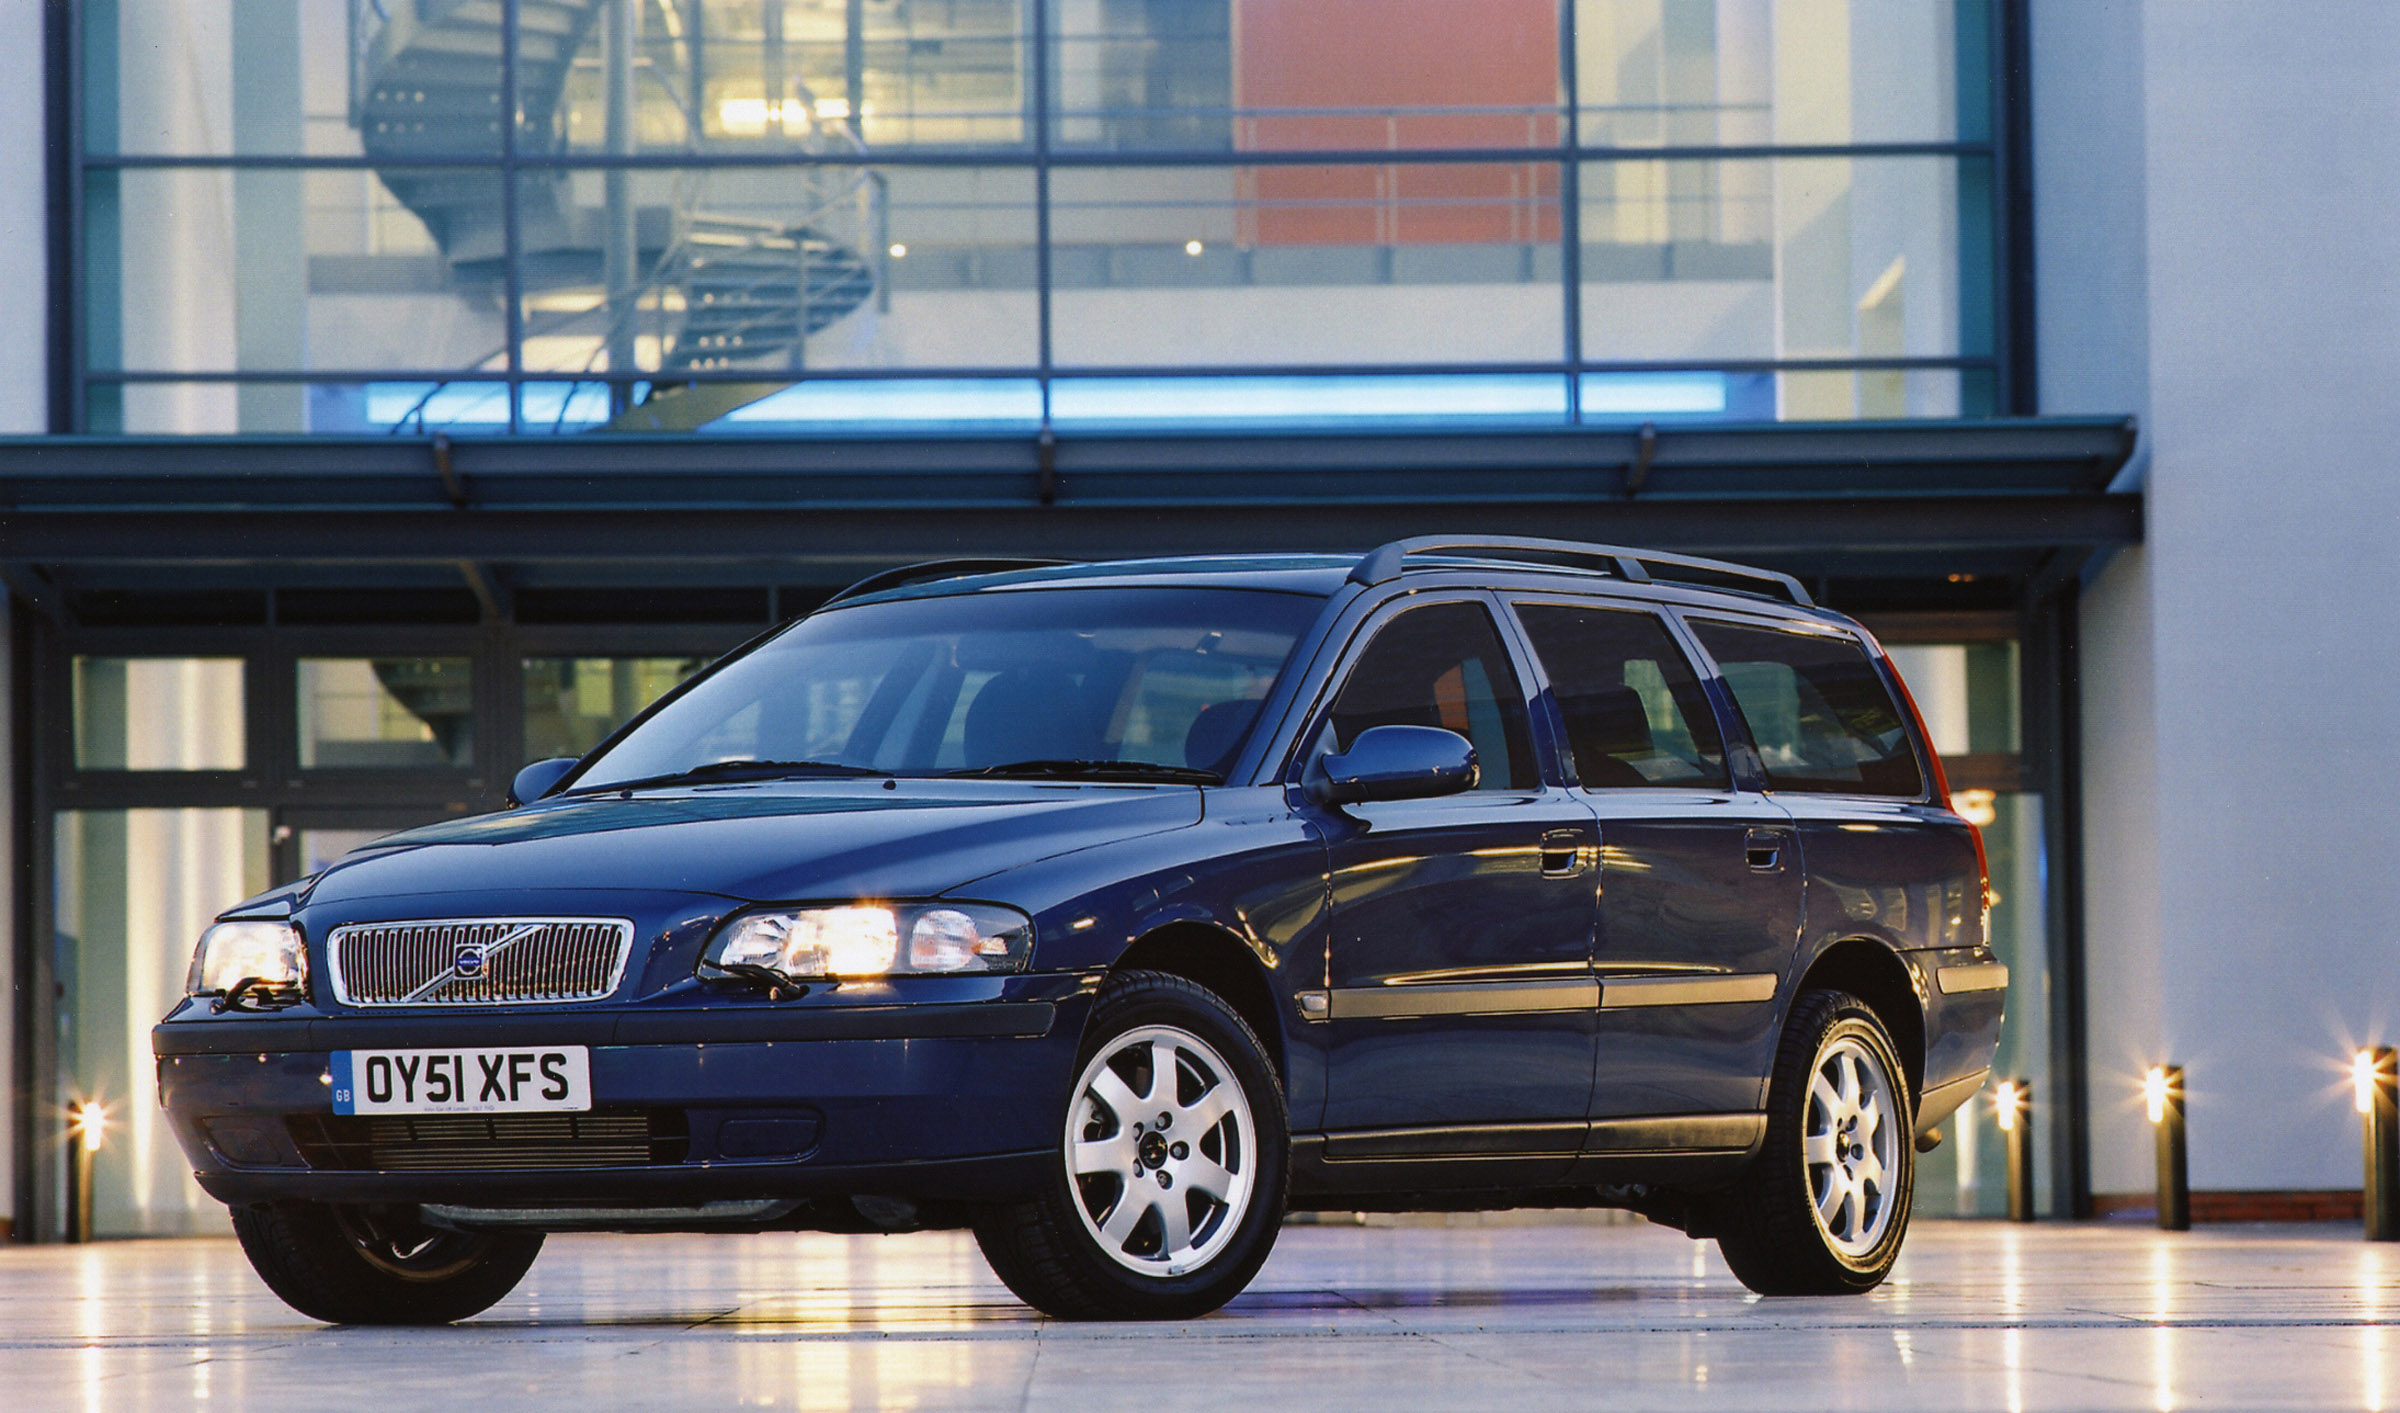 Honda Accord Sport >> Volvo V70 2001 - Picture 14179